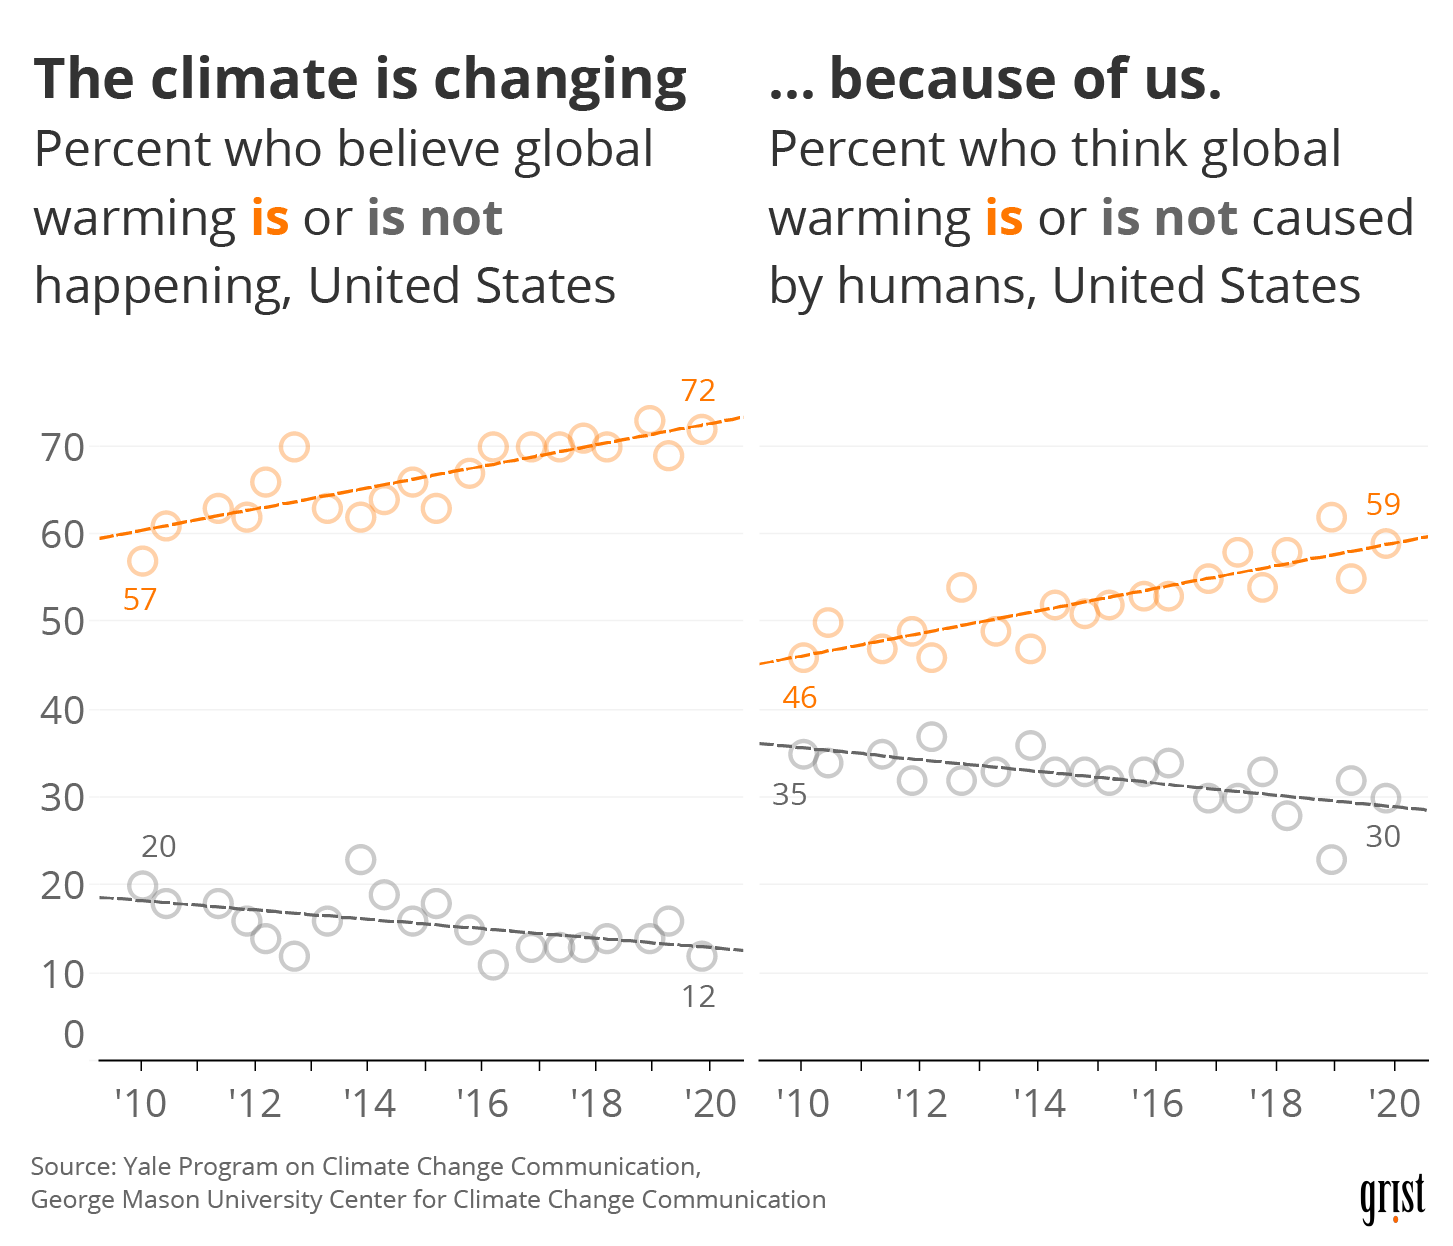 Two line charts showing an increasing percentage of people between 2010 and 2019 who believe climate change is happening and caused by humans